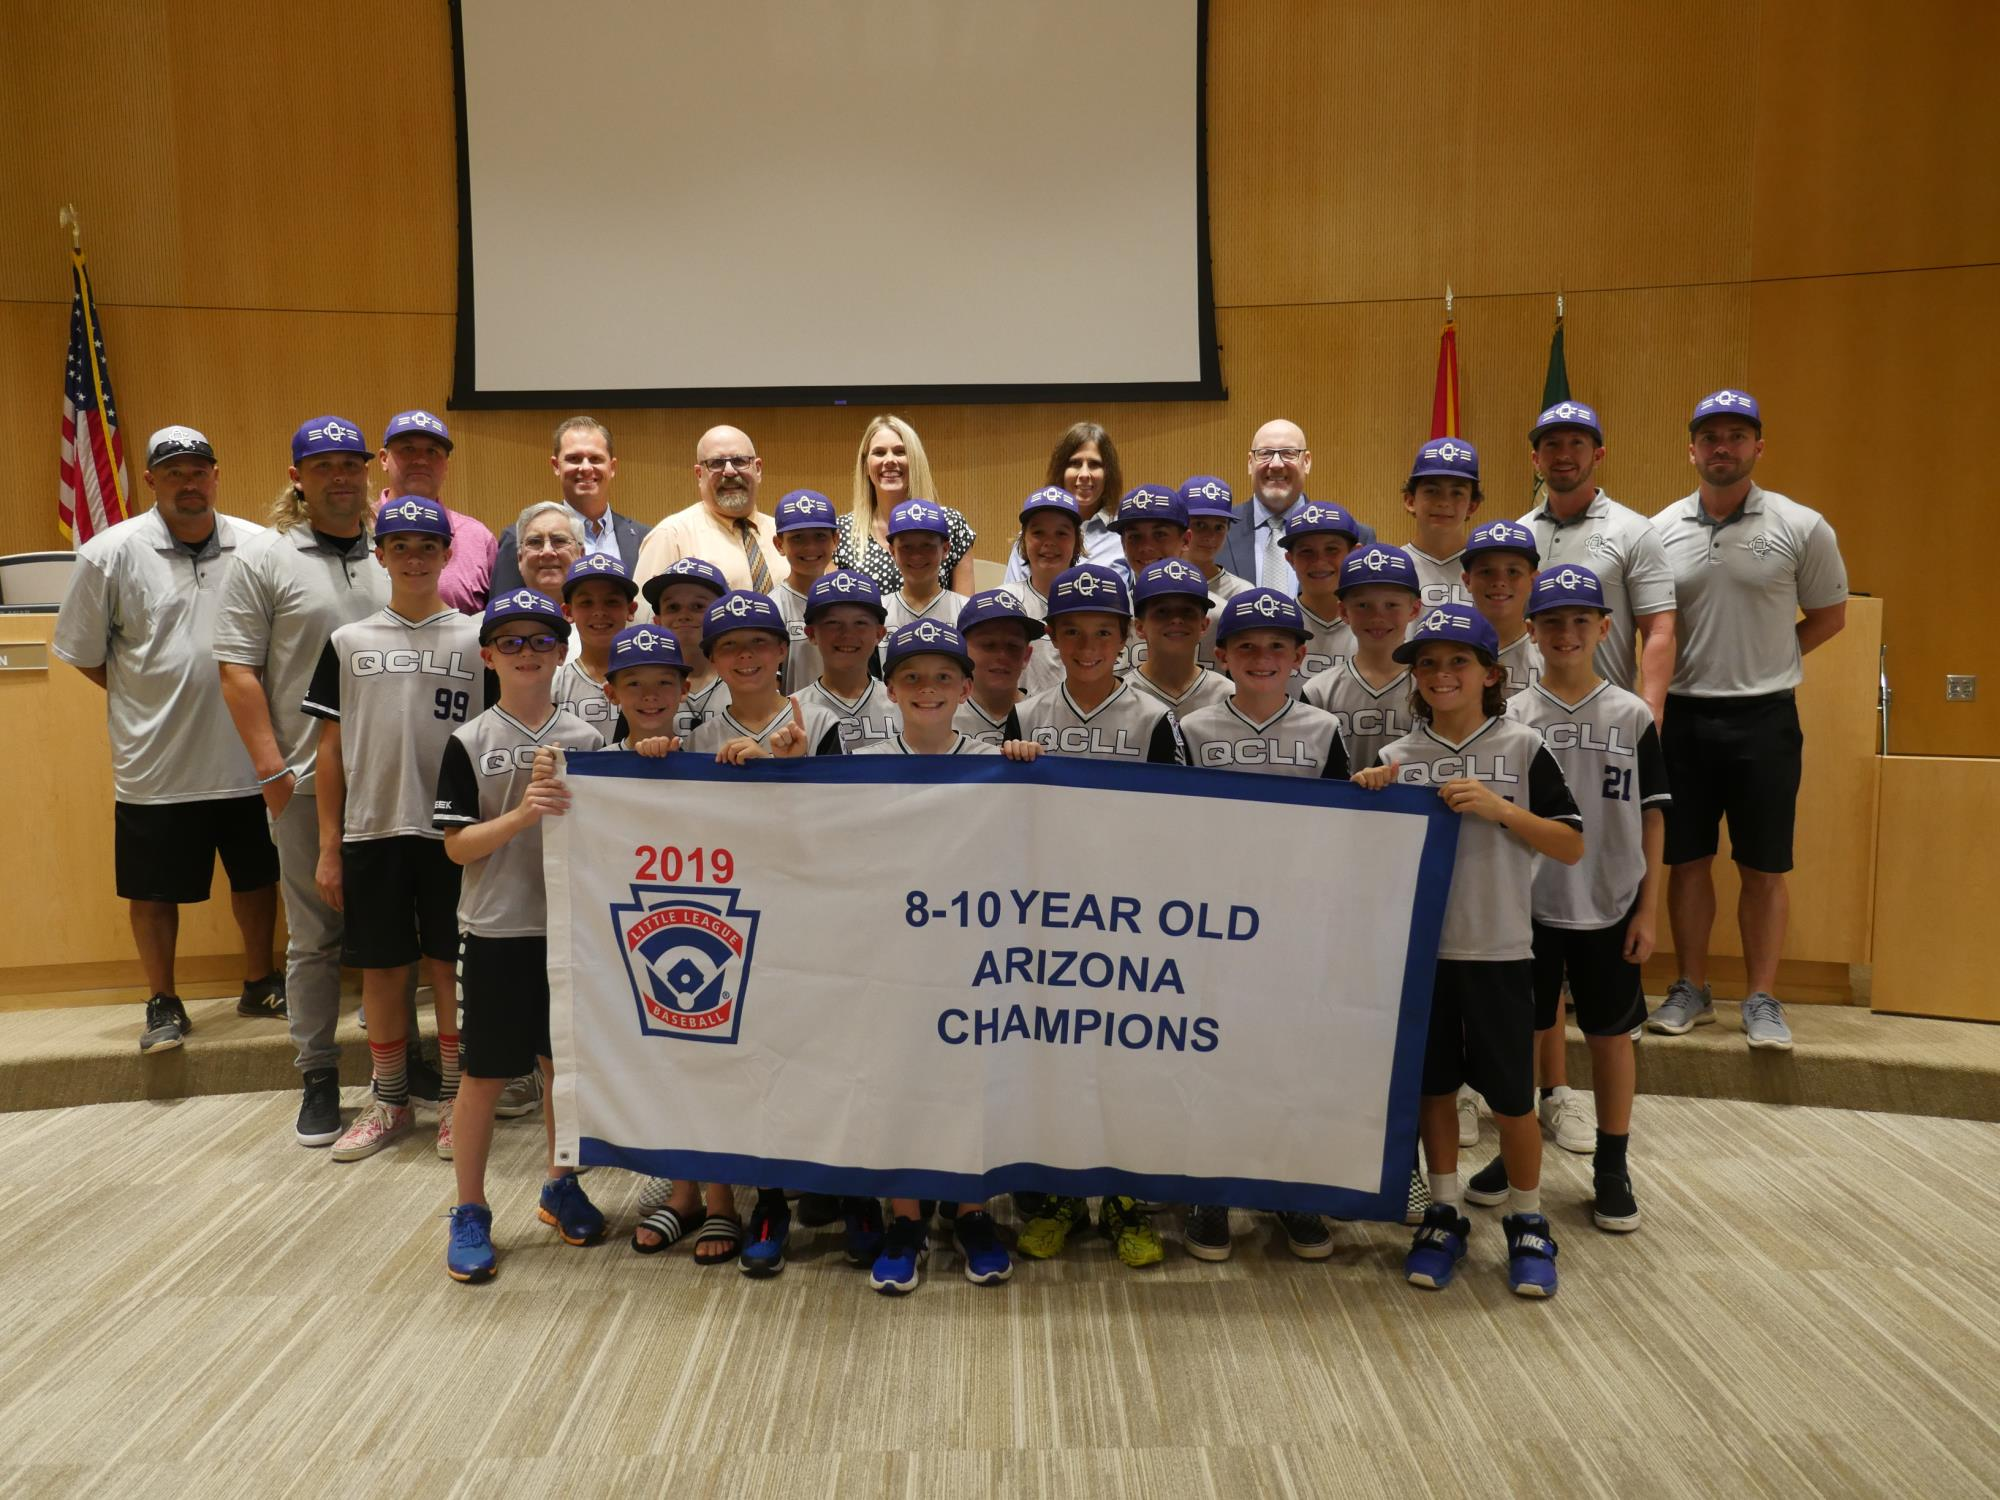 02 - Mayor Barney and the Town Council recognizing two Queen Creek Little League teams at the August 7 Town Council Meeting